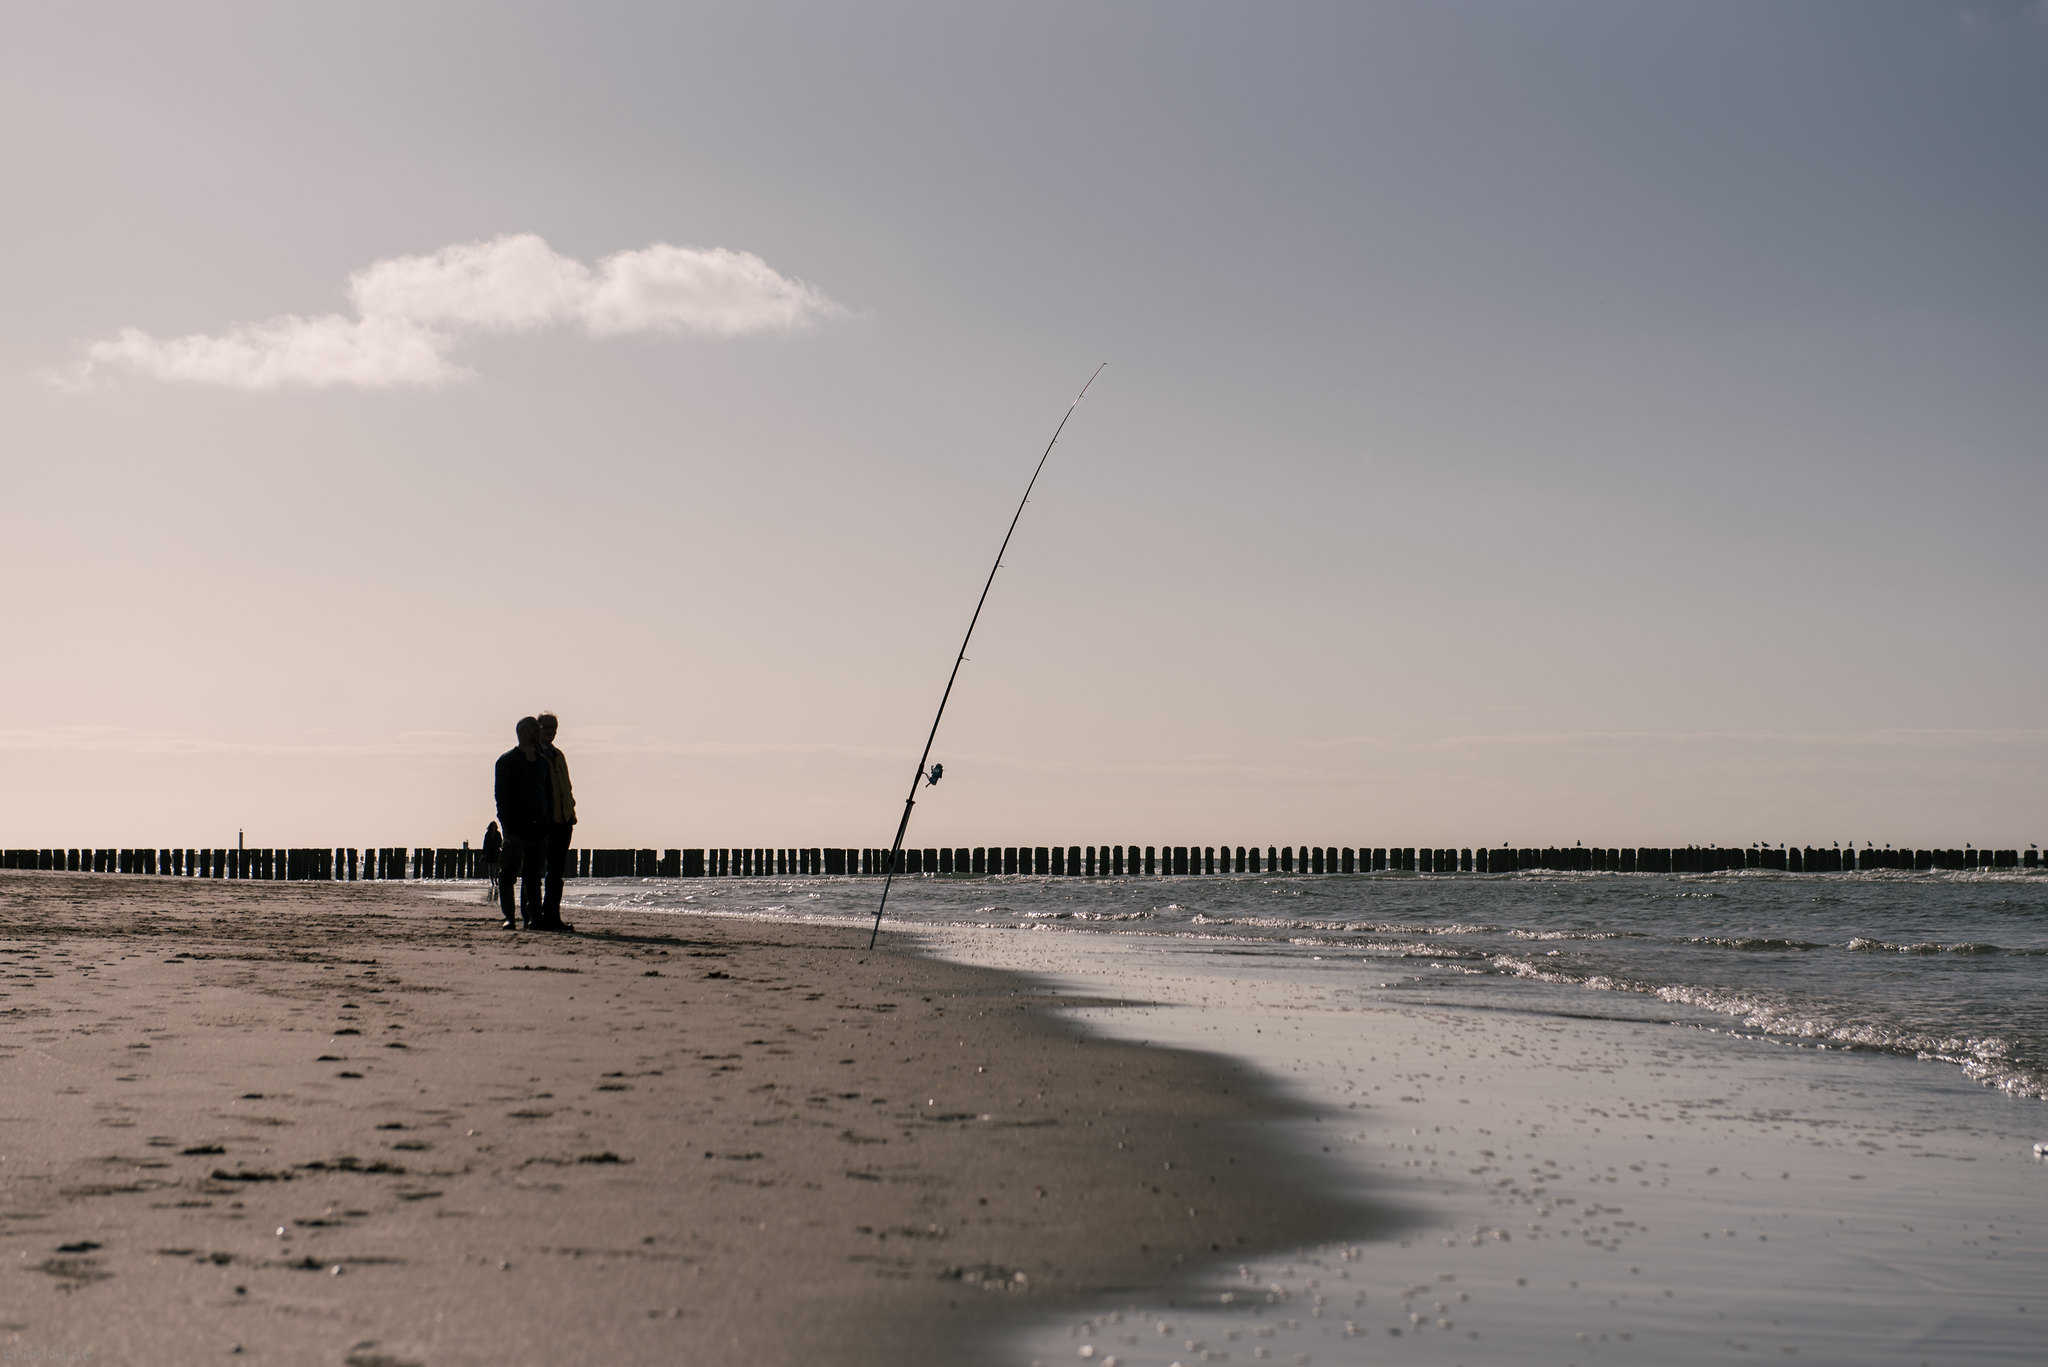 Relaxed fishing actions